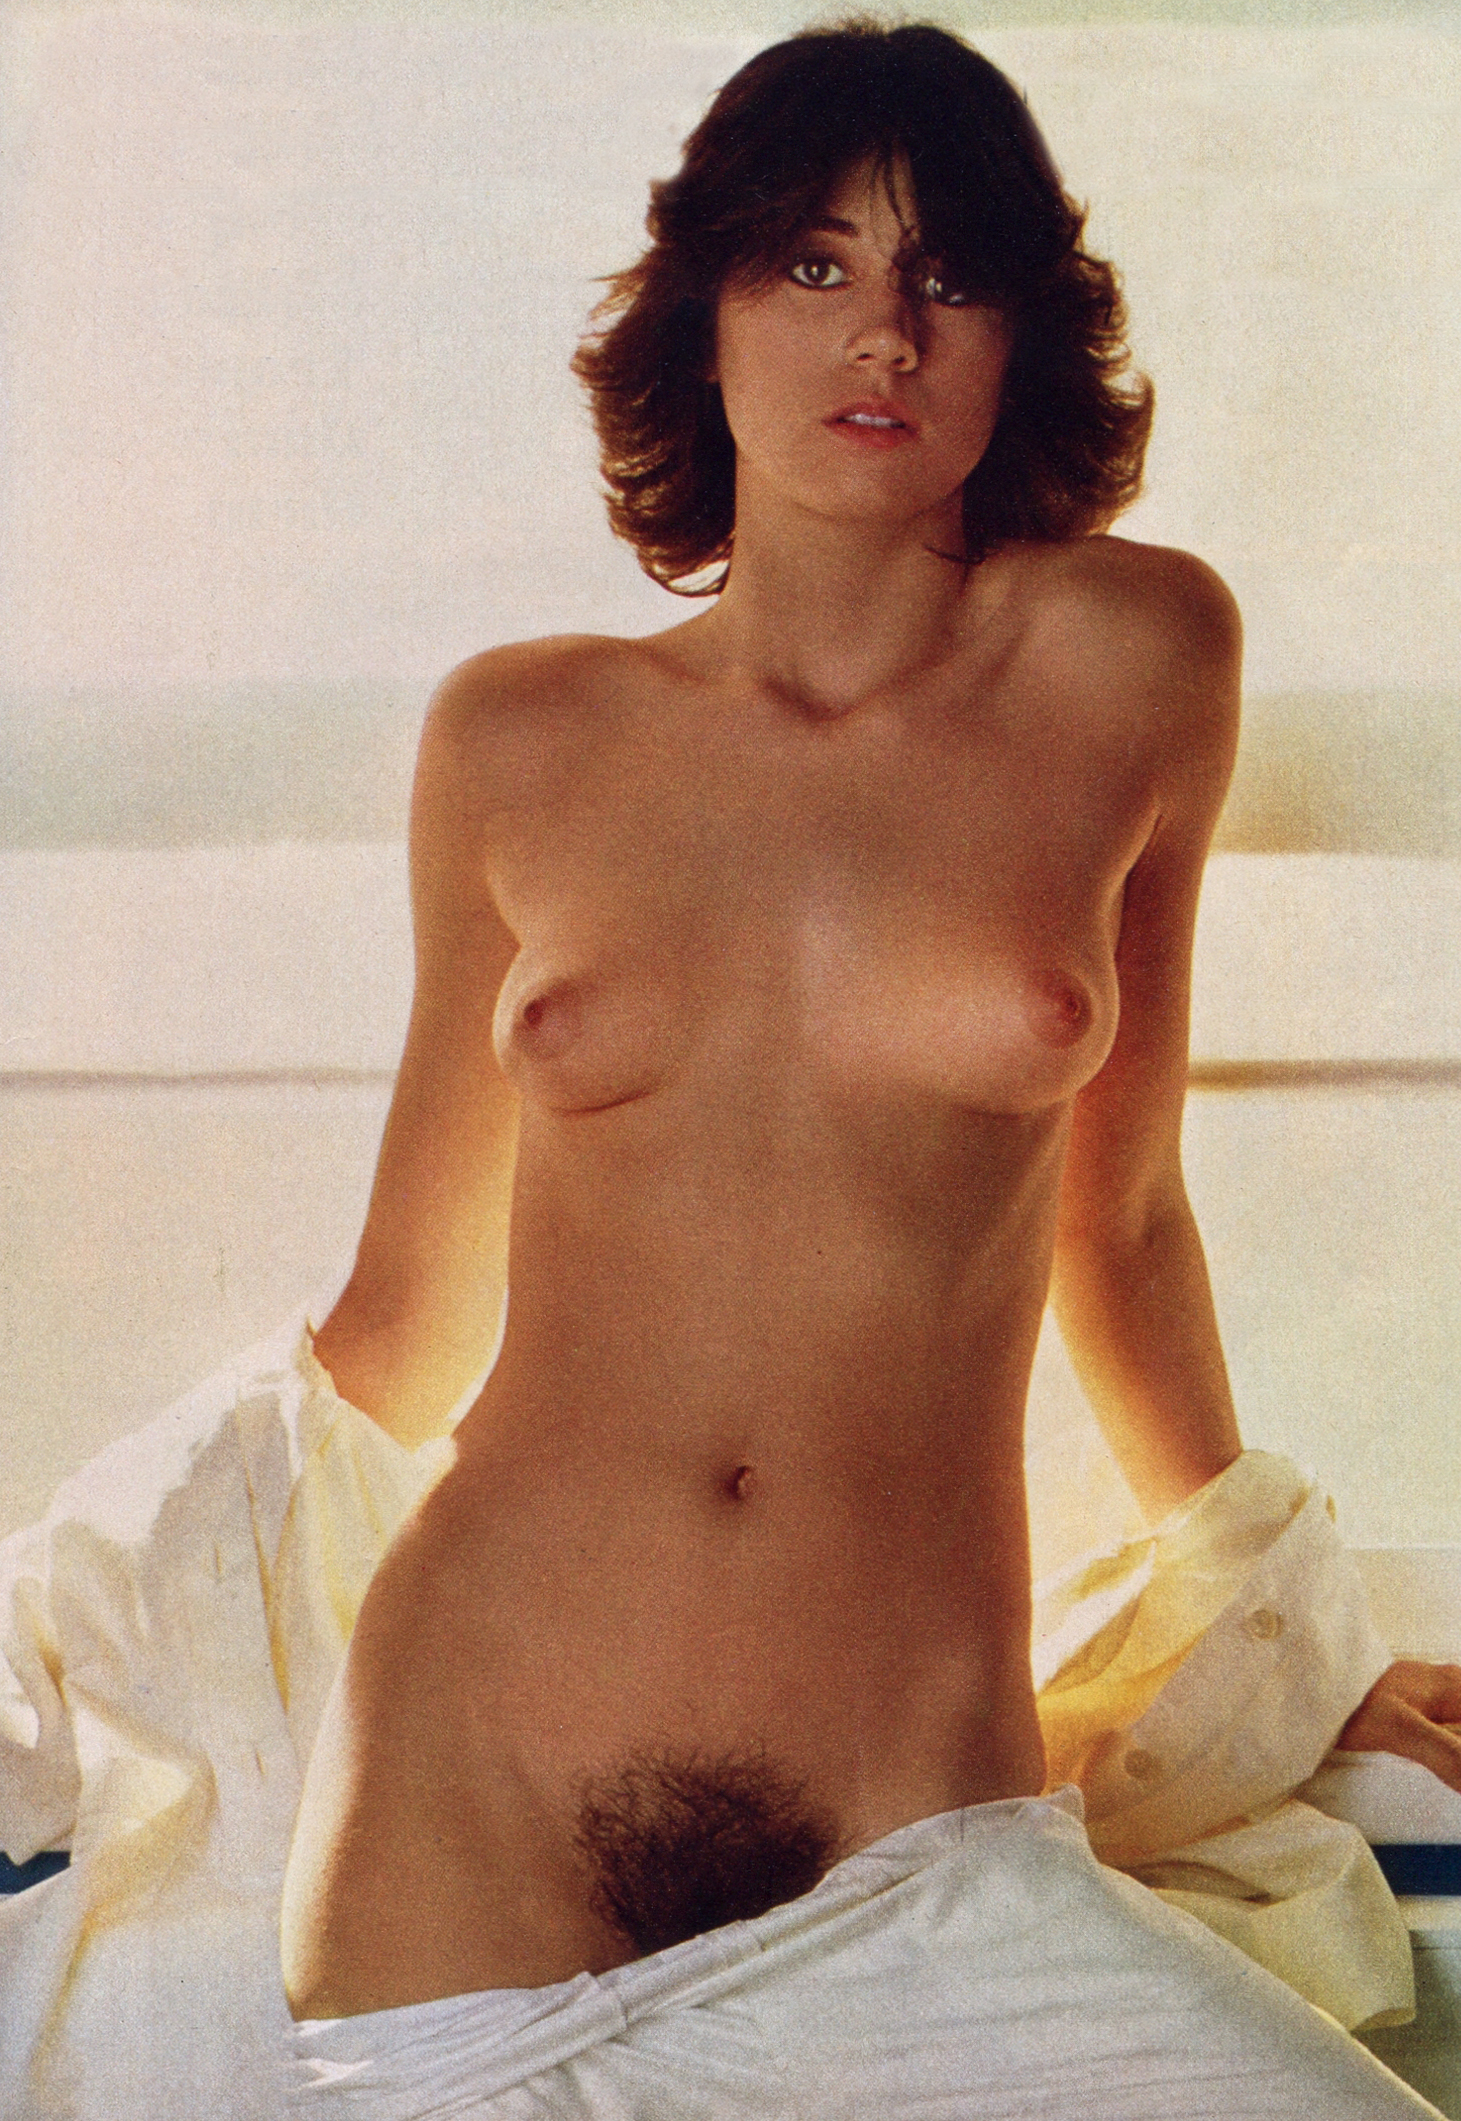 Athena Marie Oui magazine March 1978 01.jpg